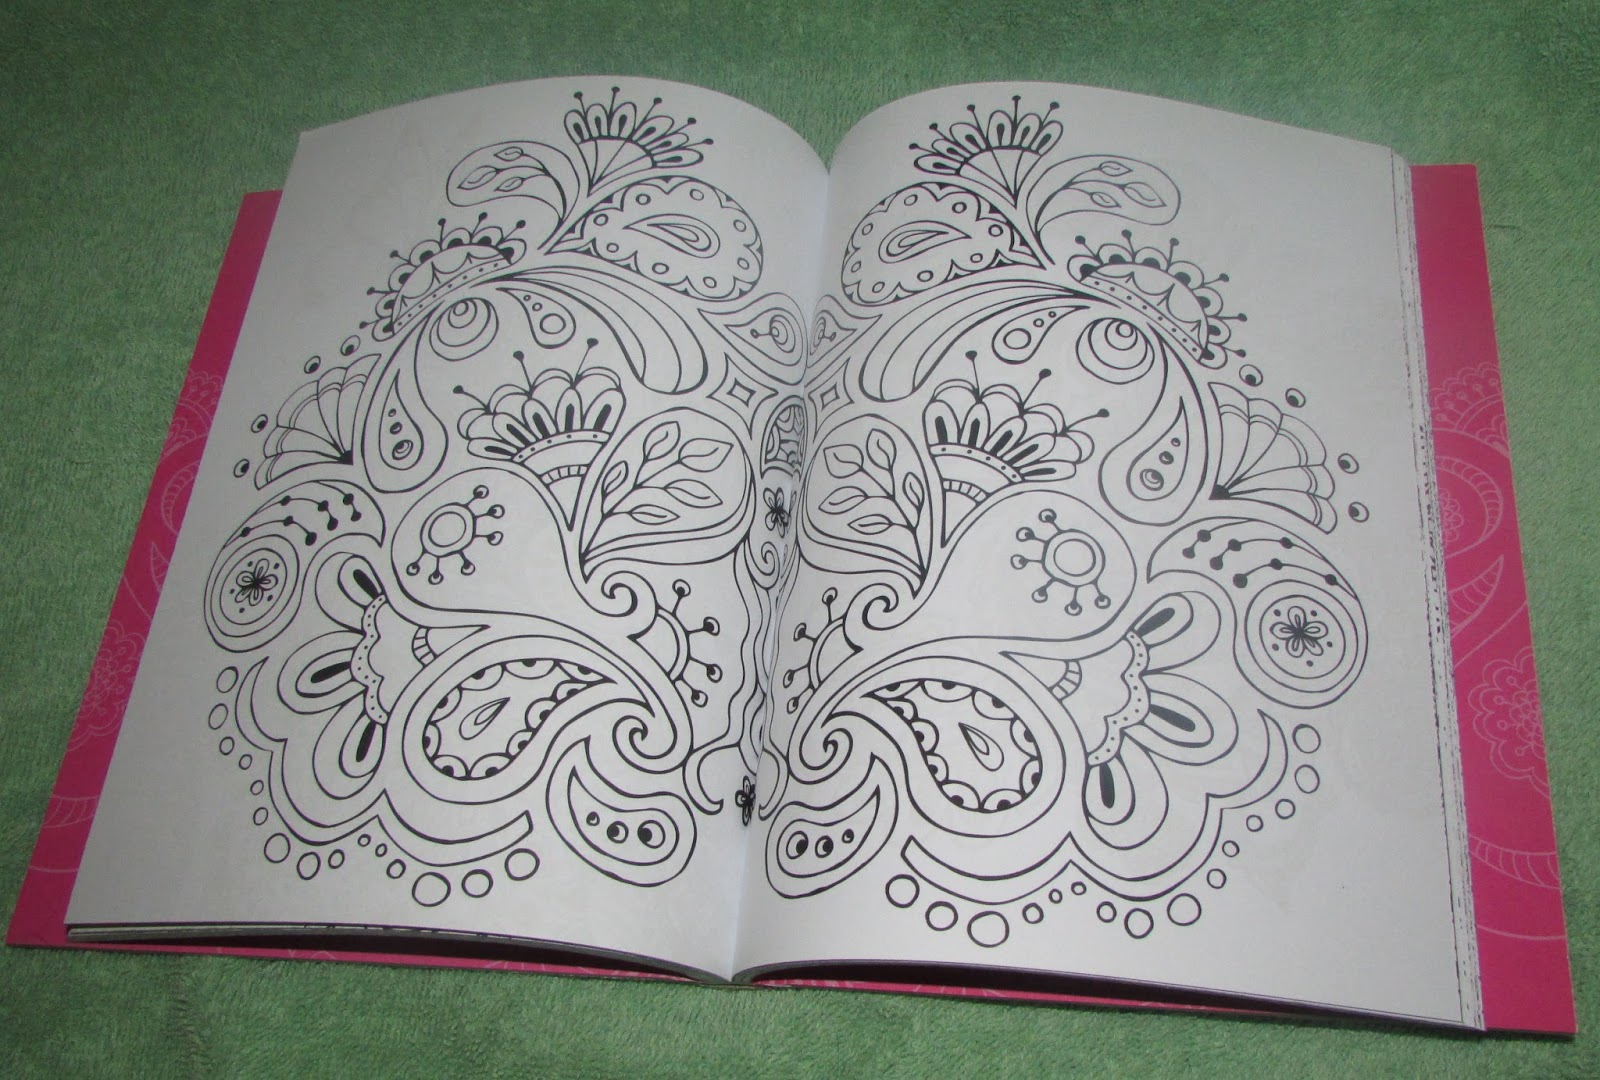 I Was Given The Opportunity To Review One Of Skyhorse Publishings Portable Coloring Books Four Volumes Available Received Calming Patterns